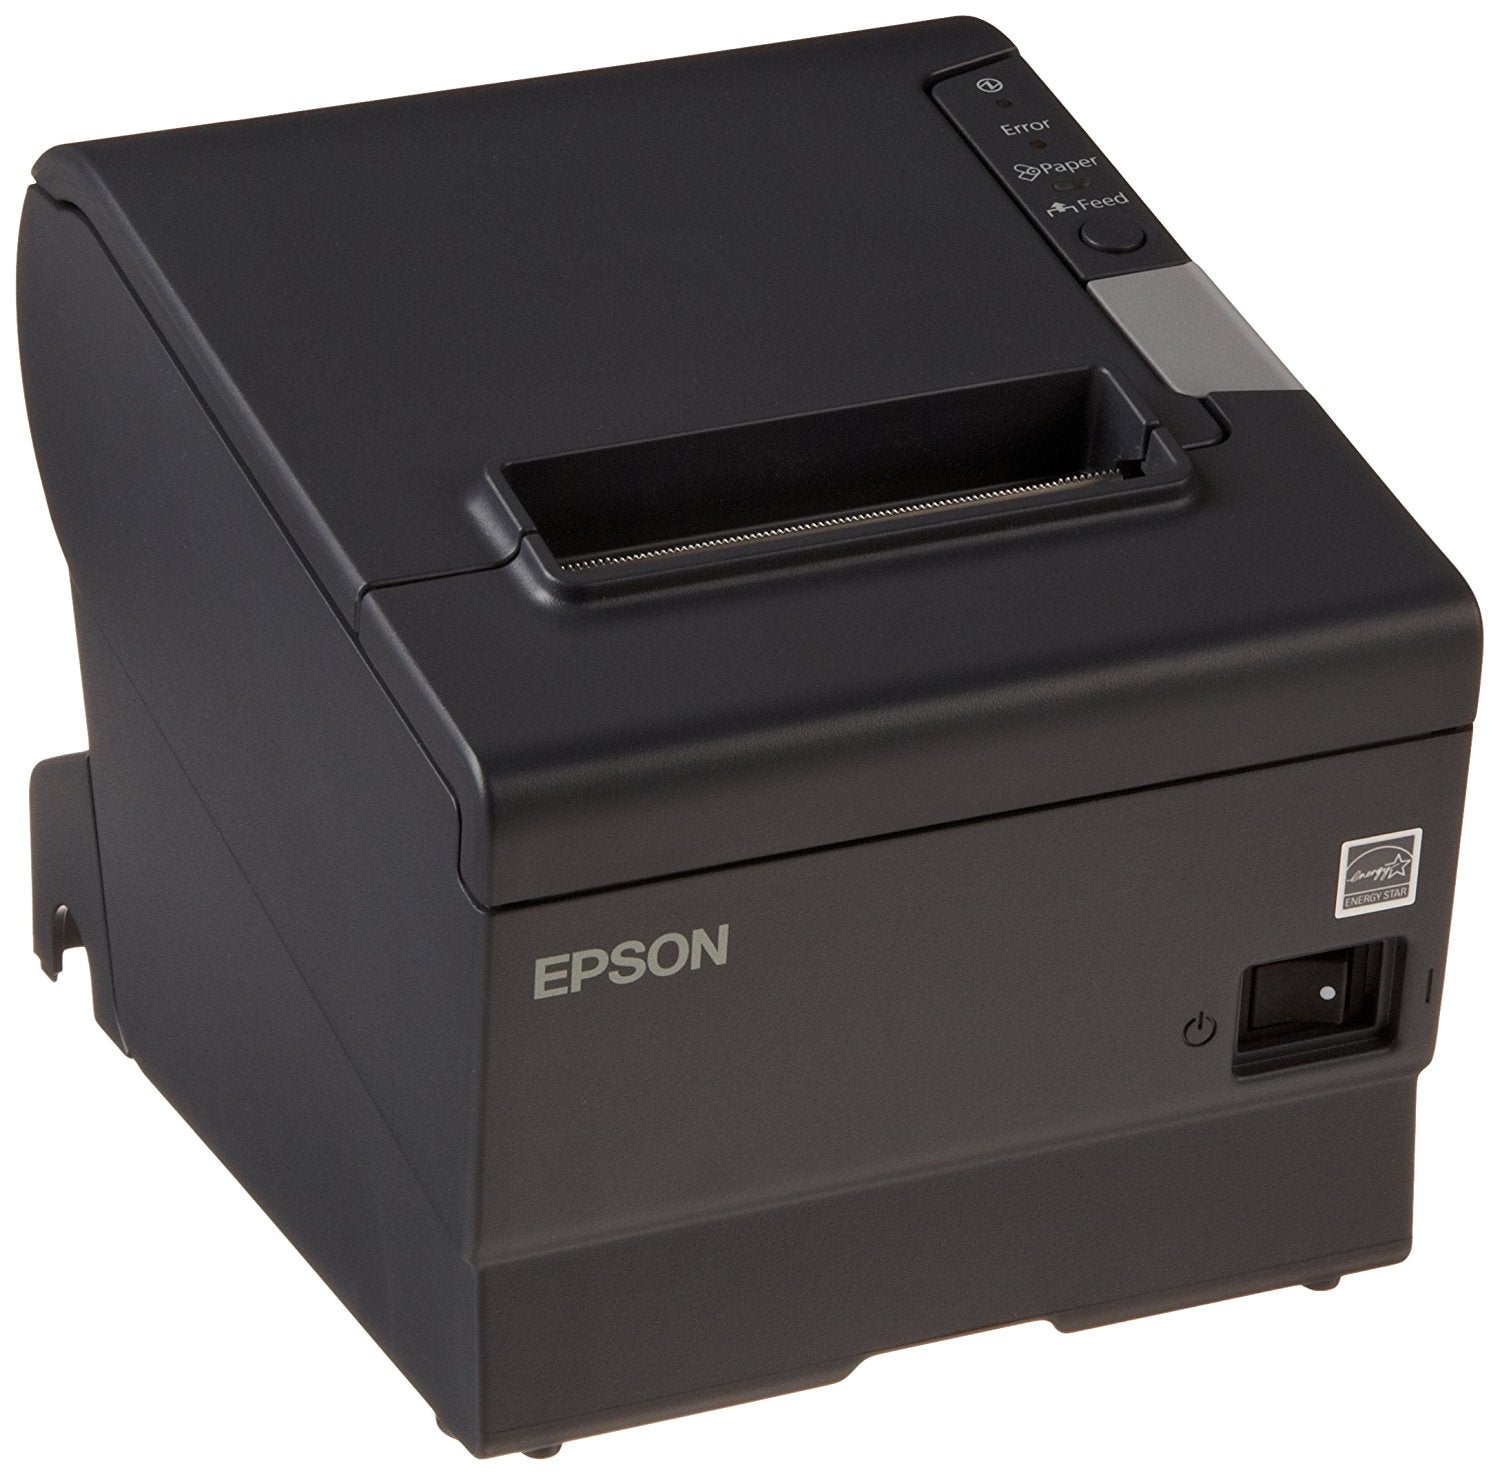 Epson TM-T88V ETH - C31CA85656 Certified Use